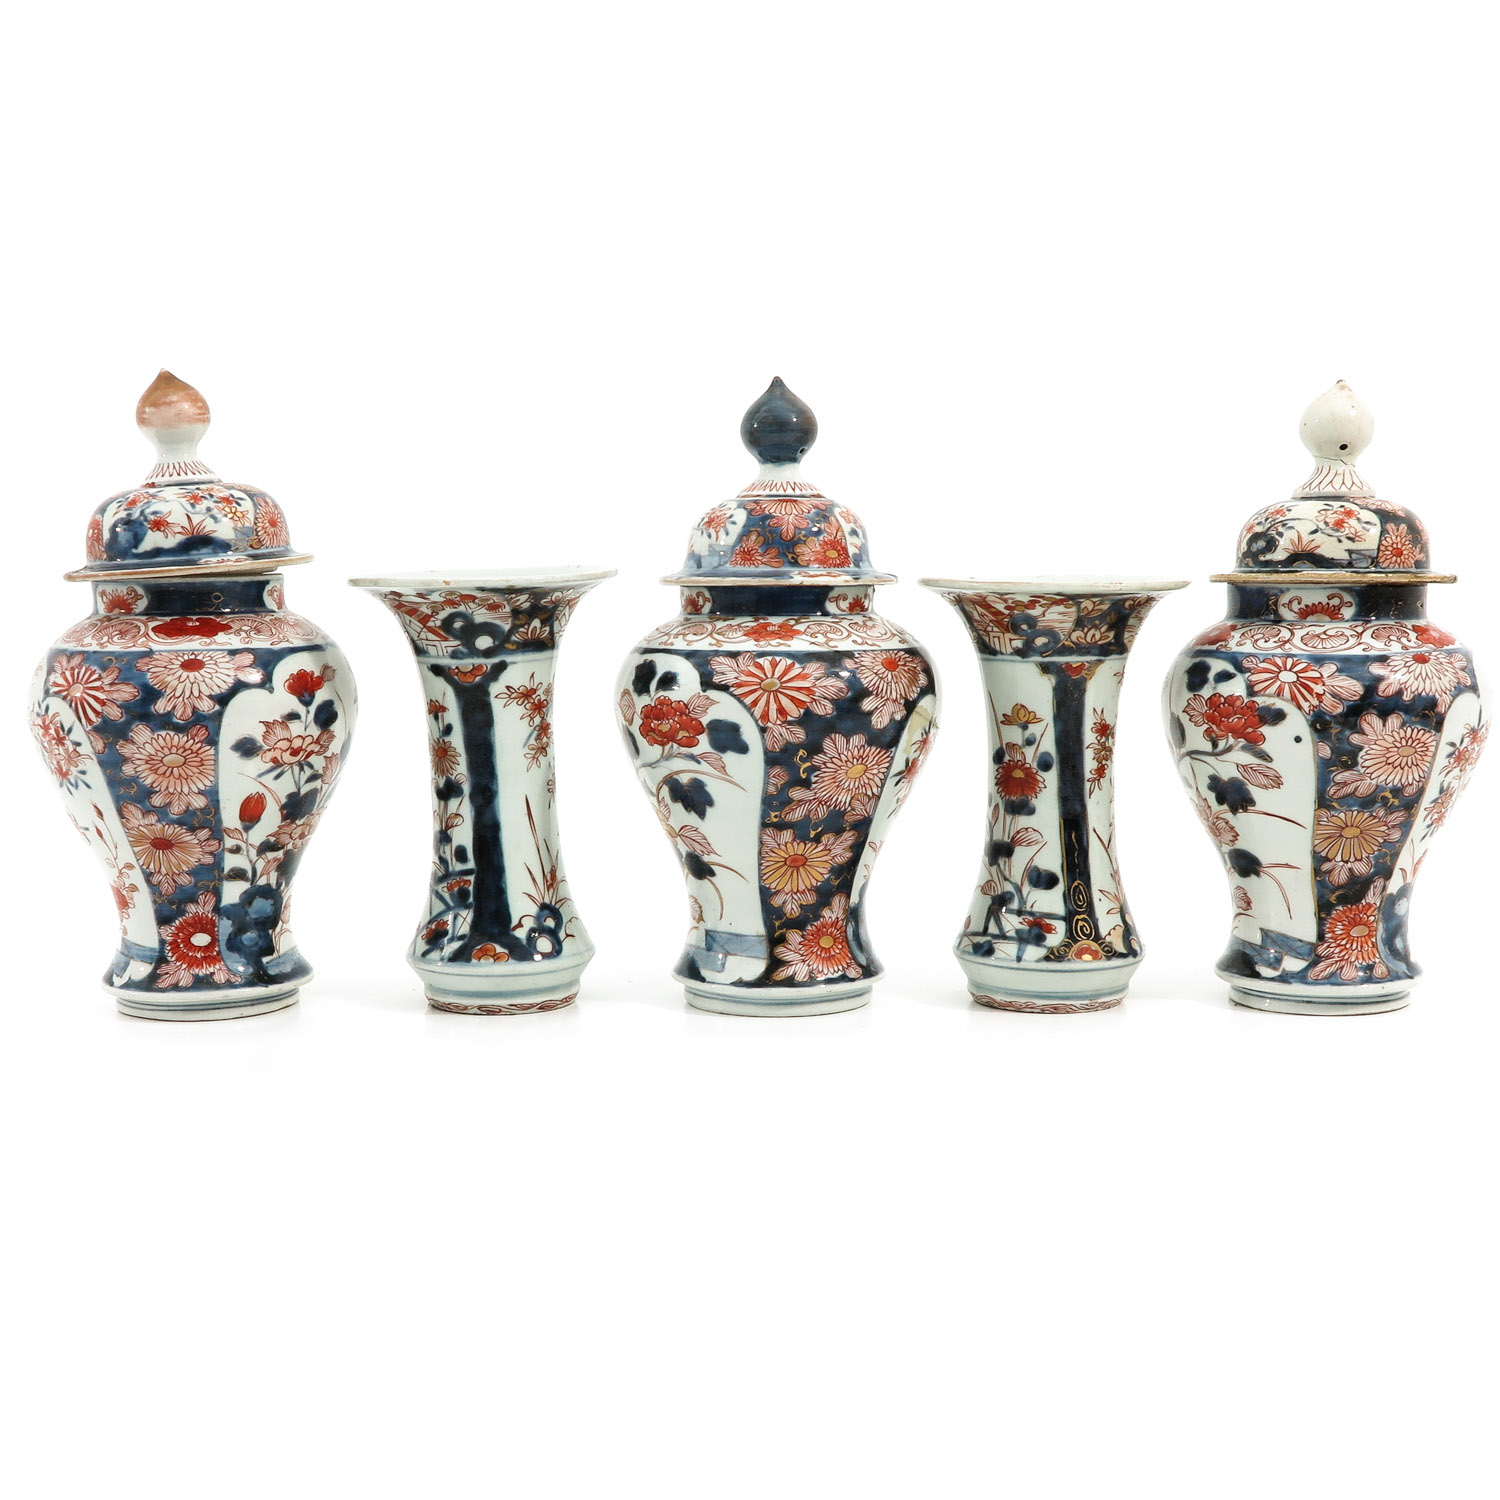 A 5 Piece Imari Garniture Set - Image 2 of 9